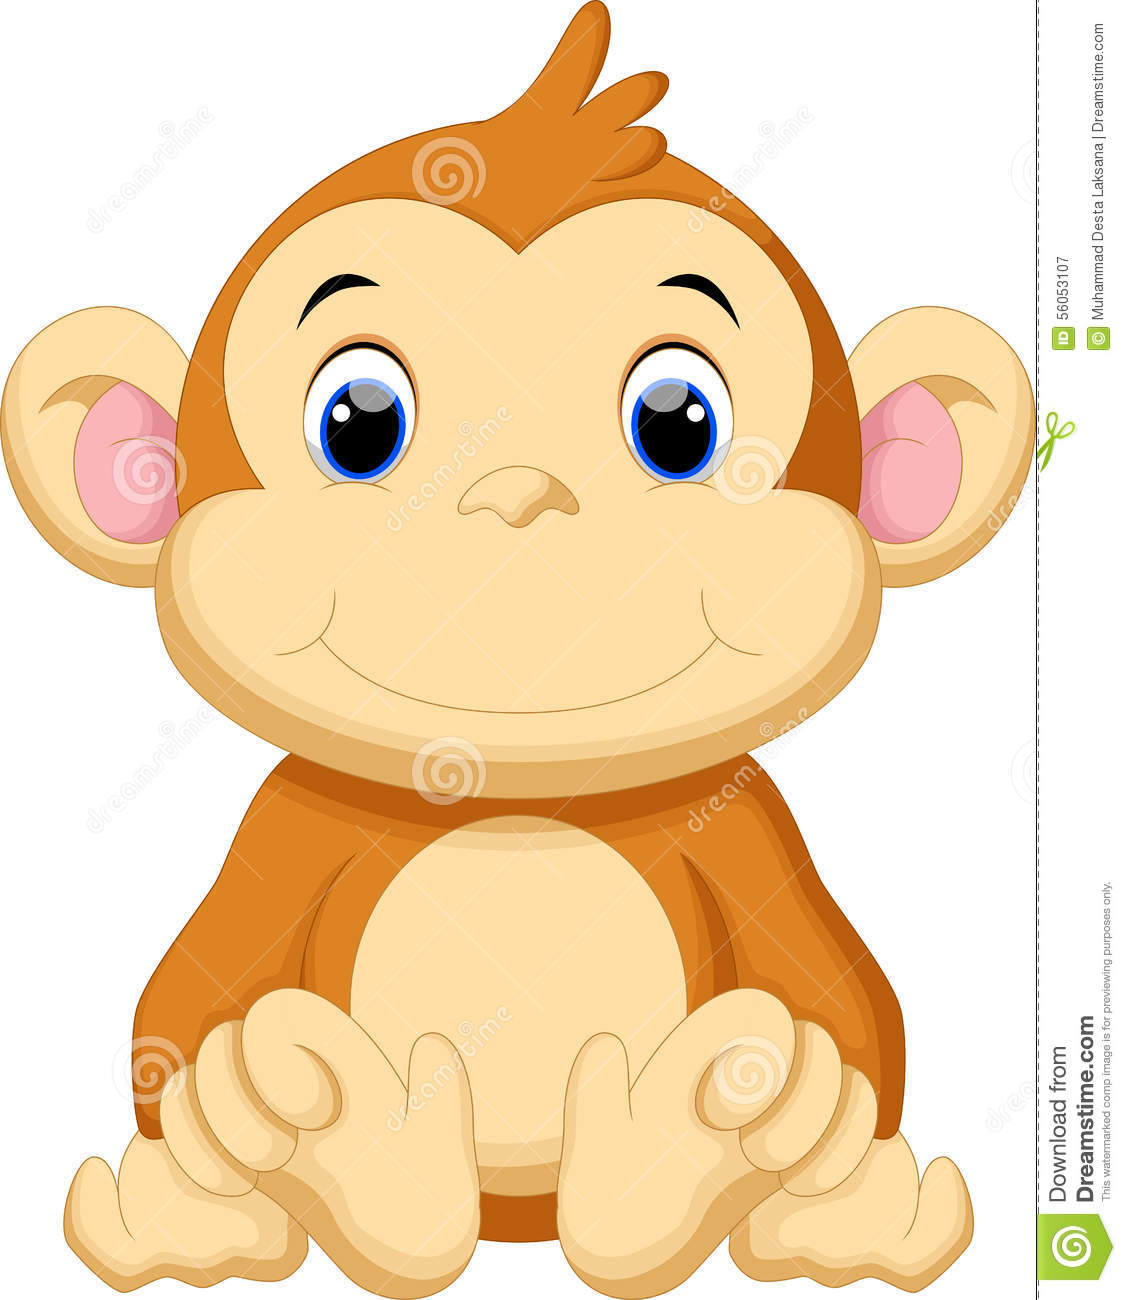 Cartoon baby monkey head